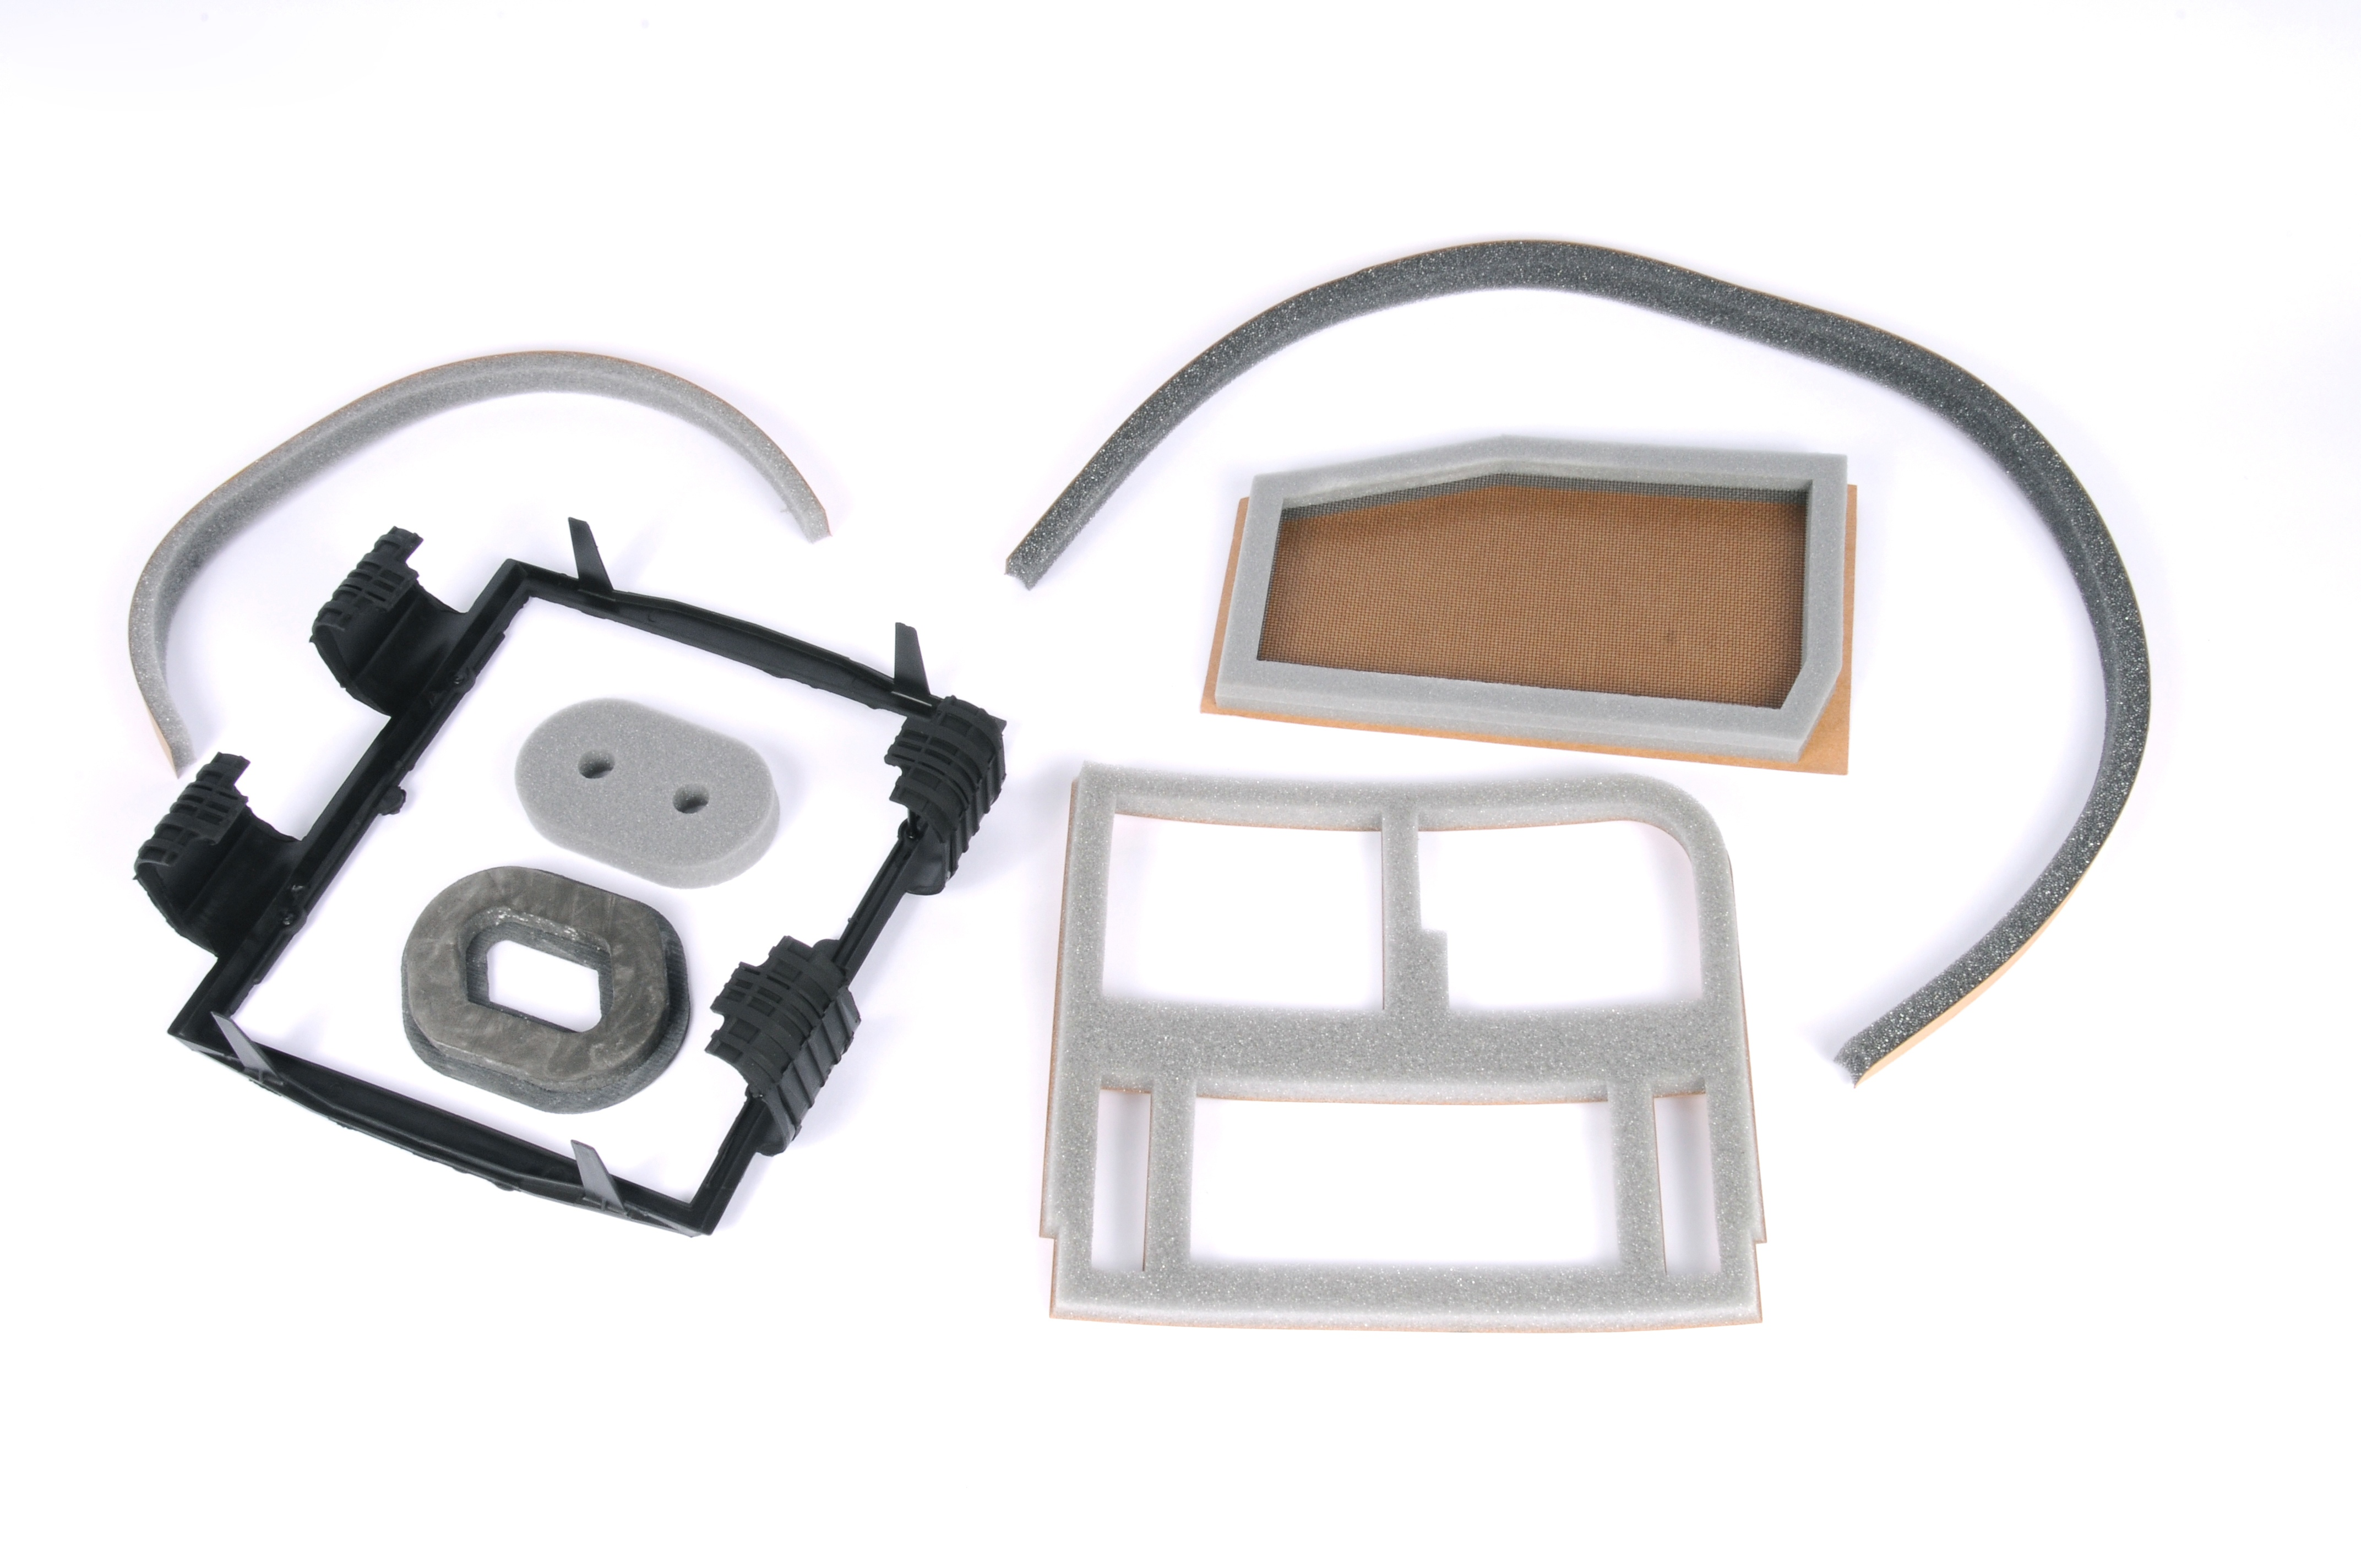 ACDELCO OE SERVICE - Heater & A/C Evaporator & Blower Module Seal Kit - DCB 15-34582